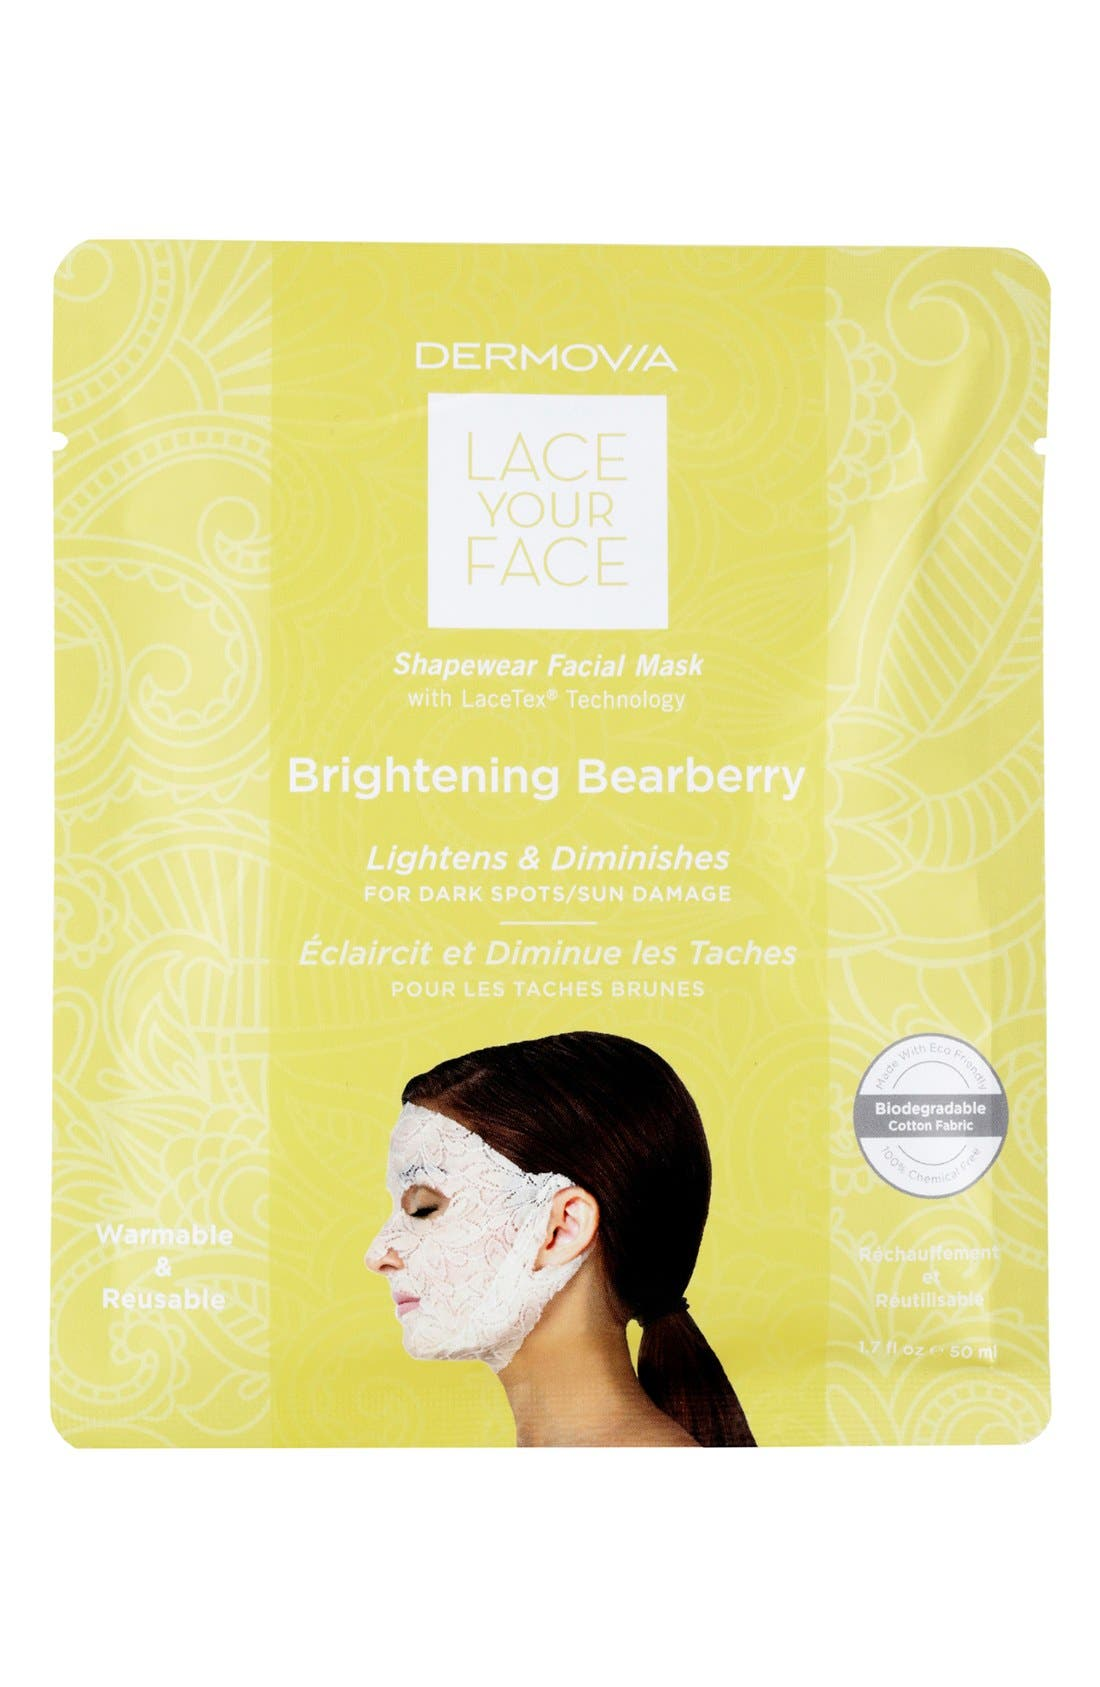 Dermovia Lace Your Face Brightening Bearberry Compression Facial Mask